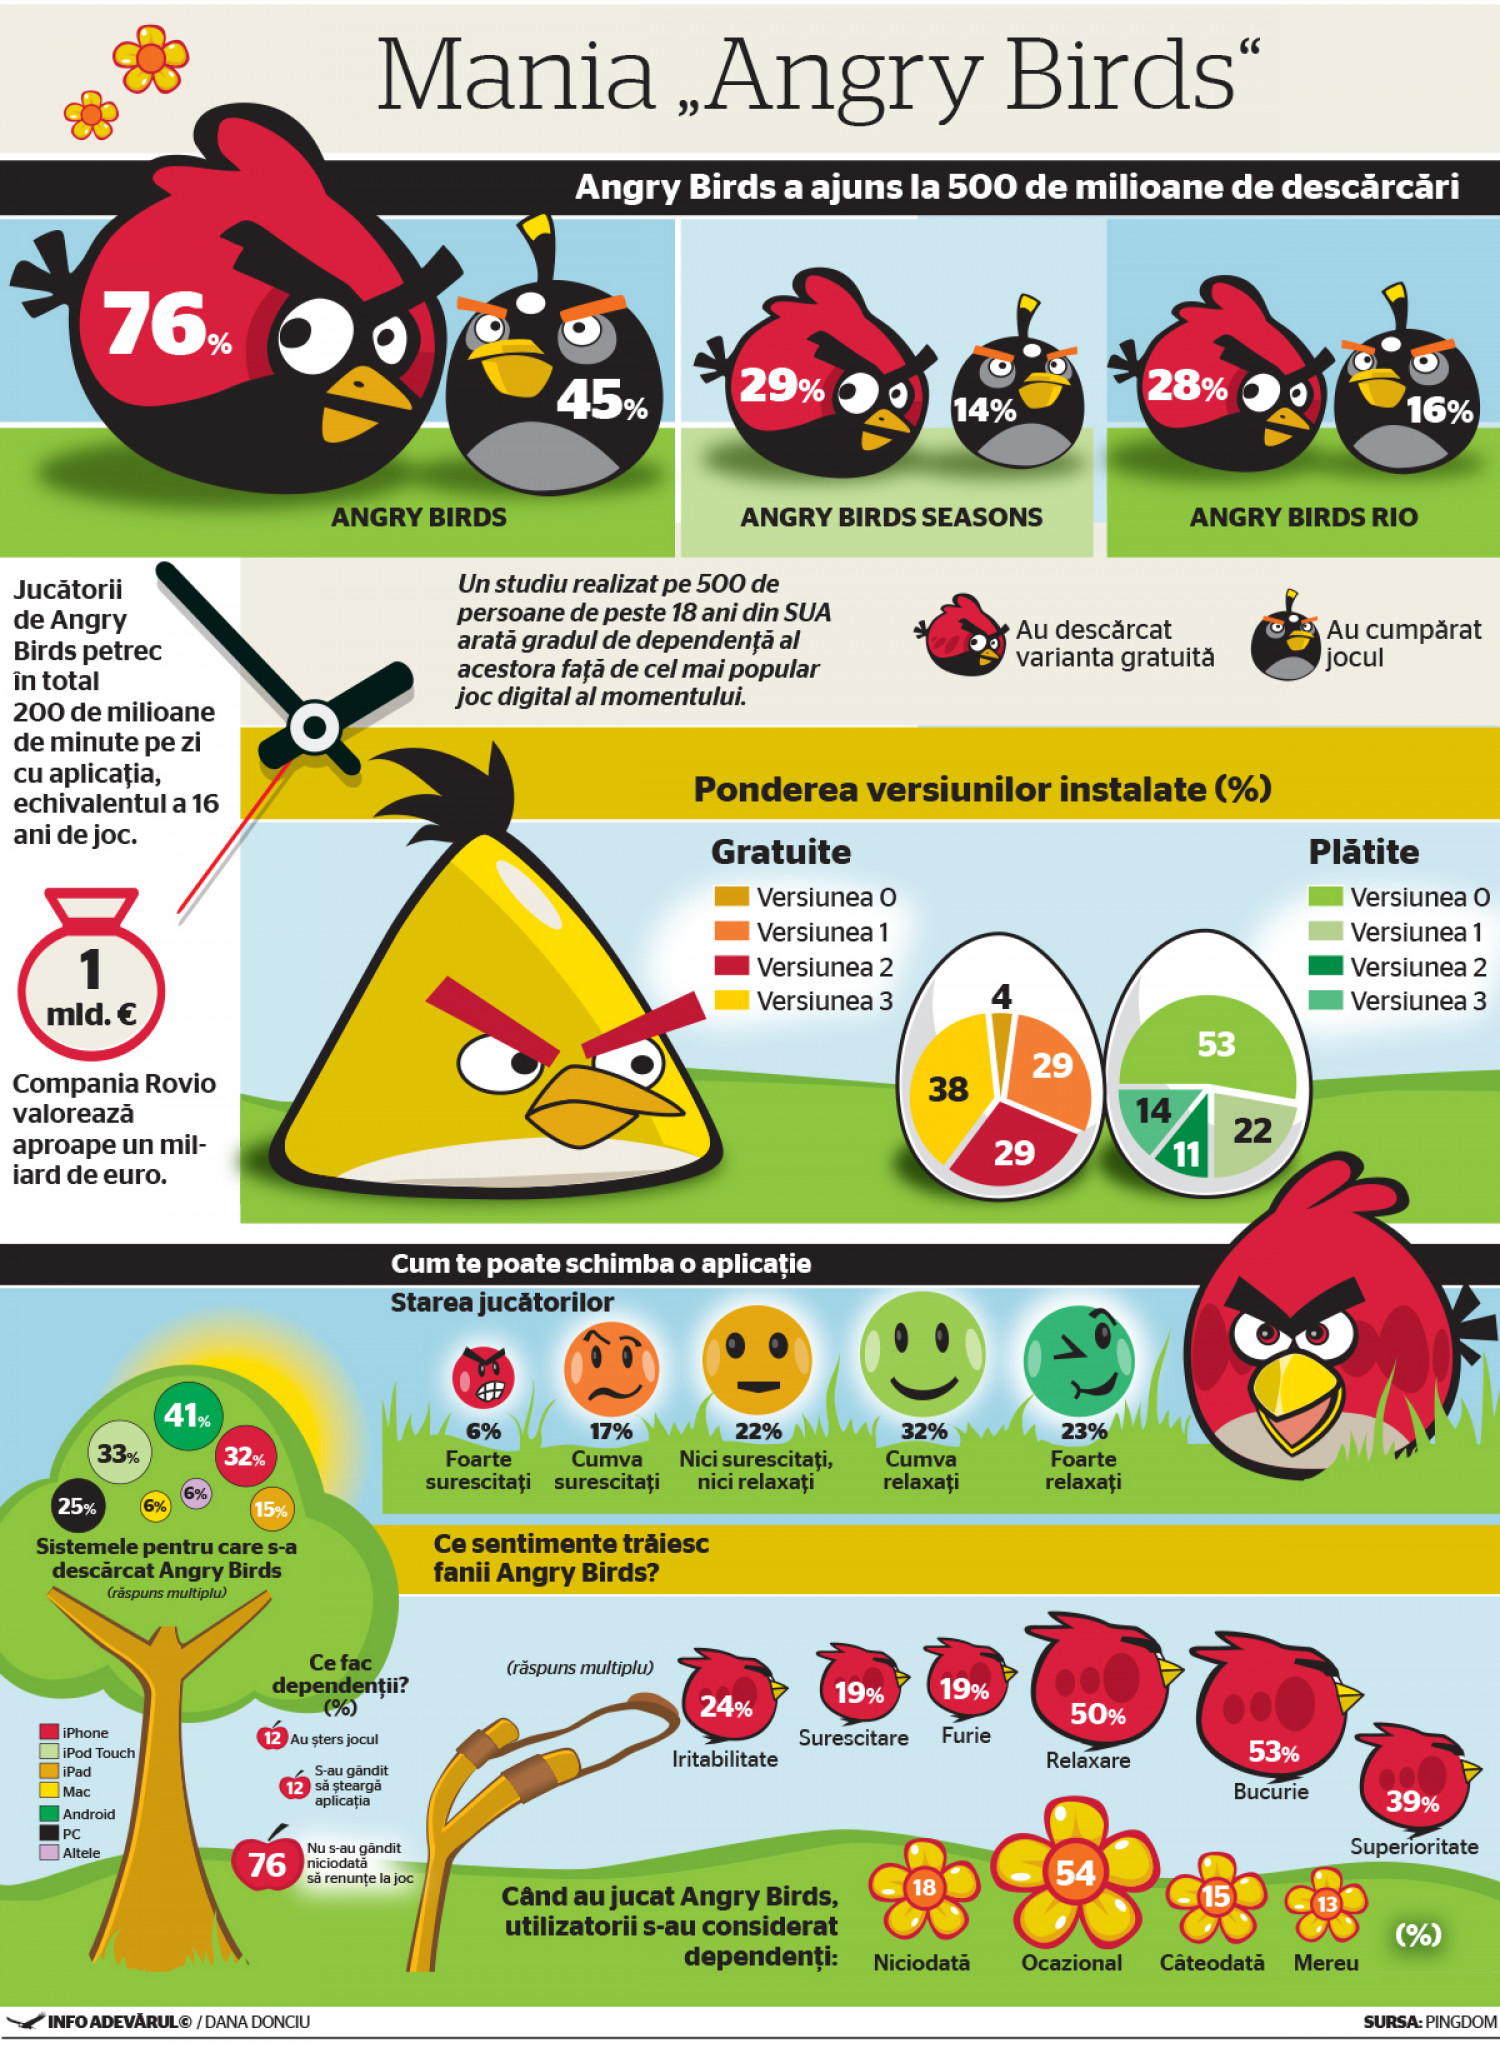 Infographic about the Angry Birds video game Infographic